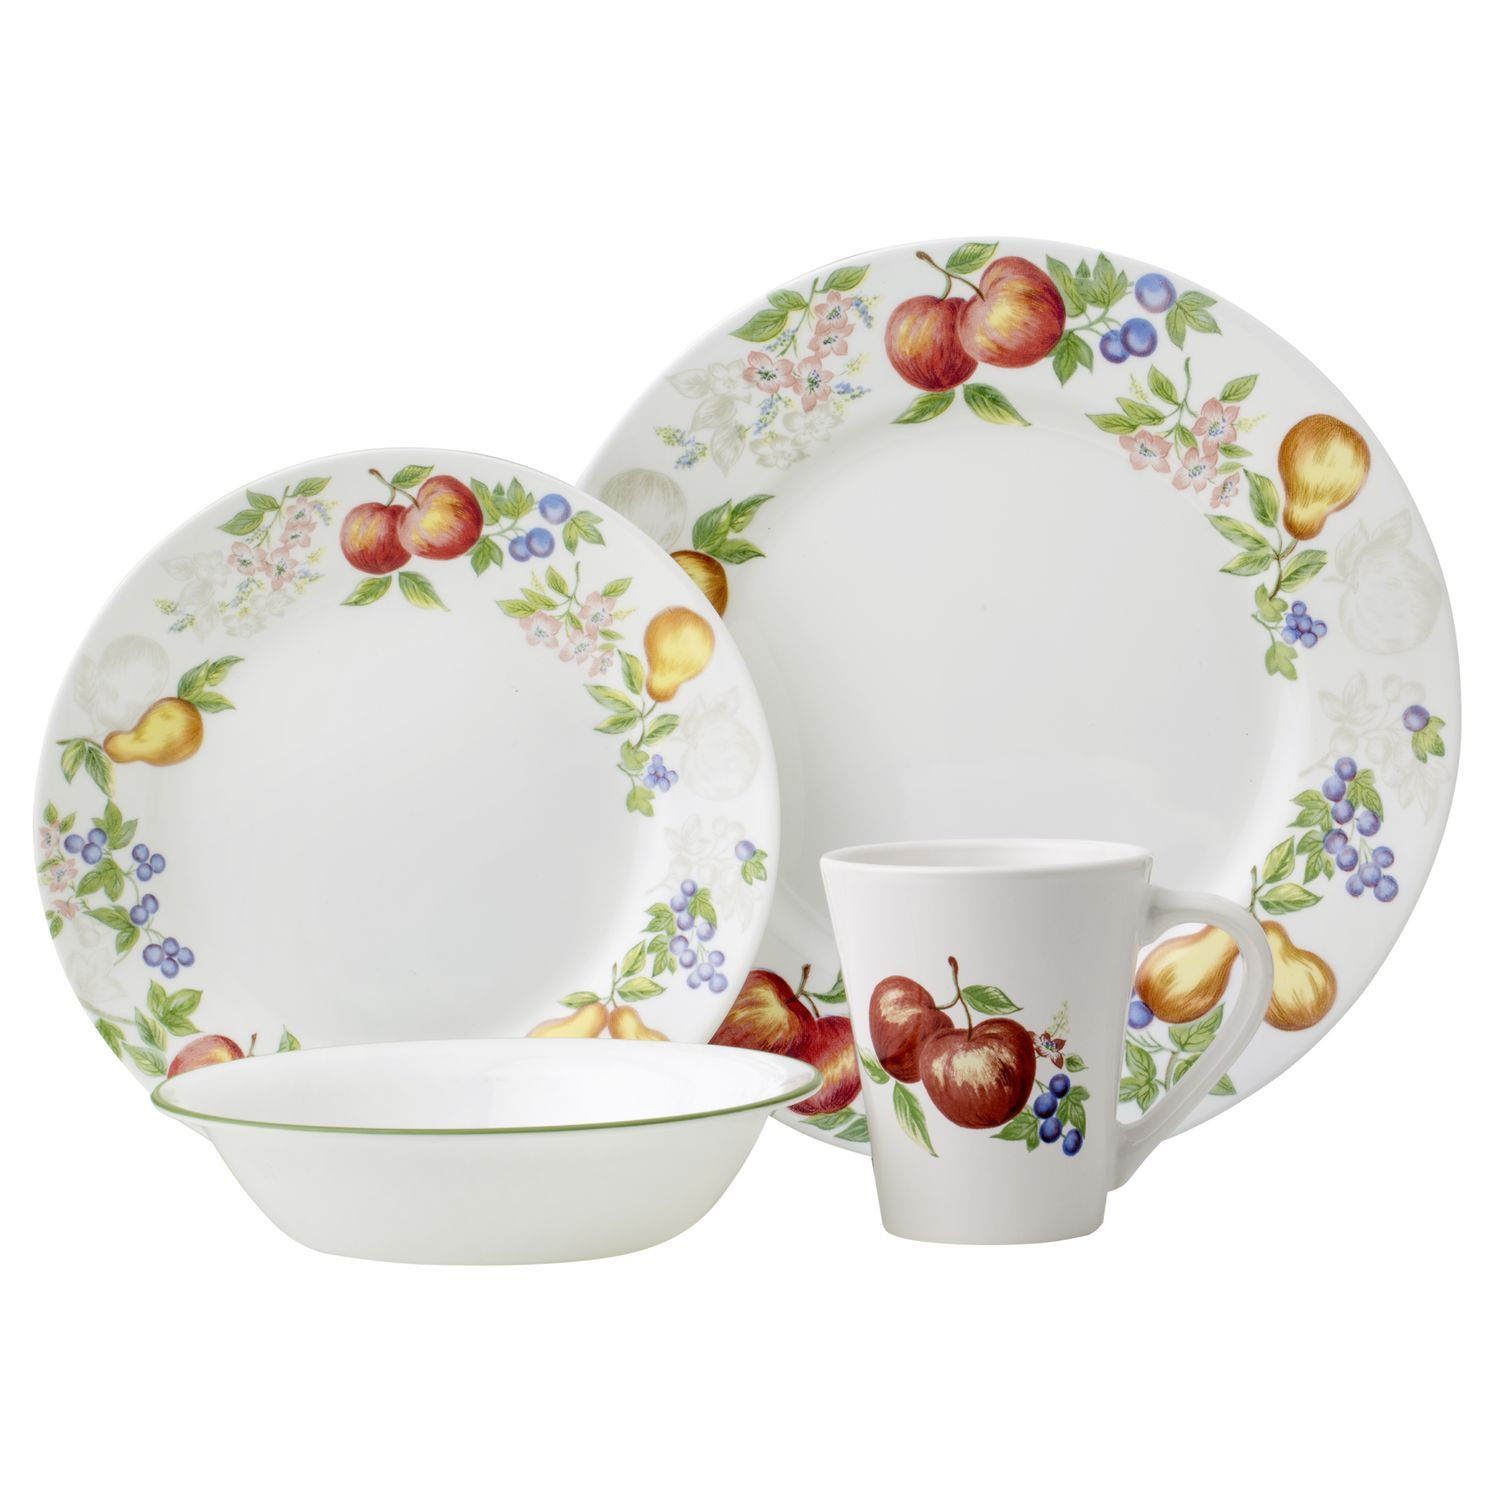 dining dishes set kitchen opalware cottages glass product large home corelle vitrelle pc country cid dinner cottage